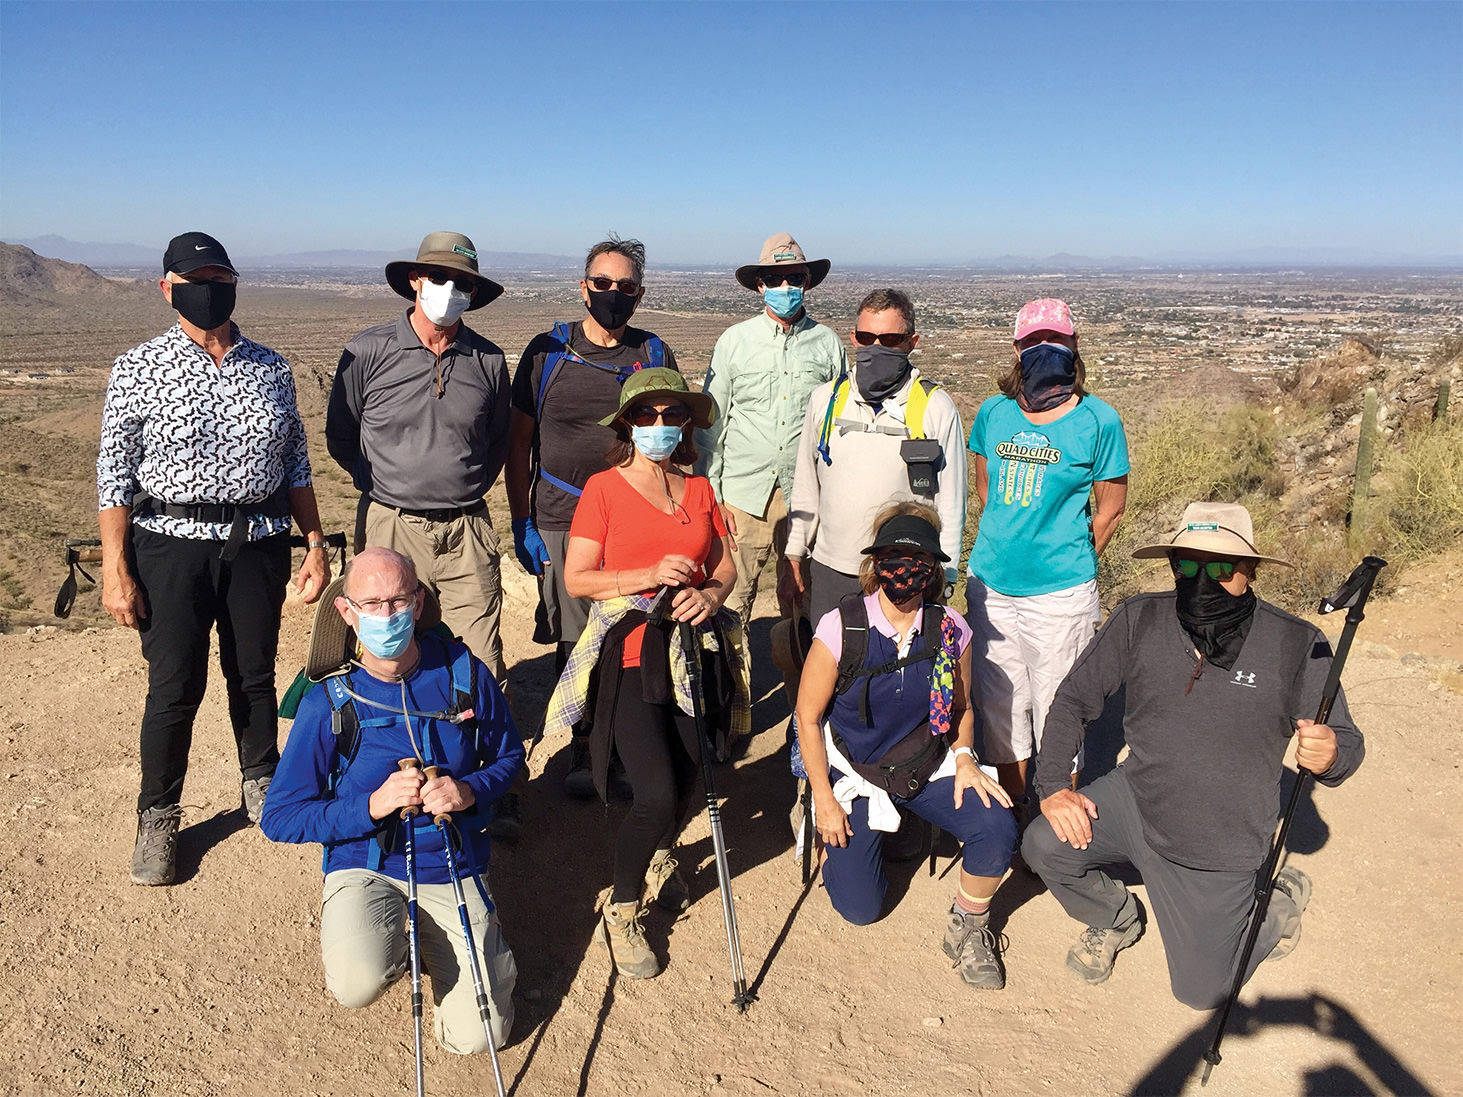 Club hikers atop Goldmine Ridge in San Tan Regional Park; pictured (left to right) front row: Stu Frost, Fabiola Scotto, Dawn Kain Bjustrom, and Tom Scotto; back row (left to right): Barb Smith, Scott Downey, David Coffman, Gaary Breitbach, Jack Rubino, and Kitch Trost